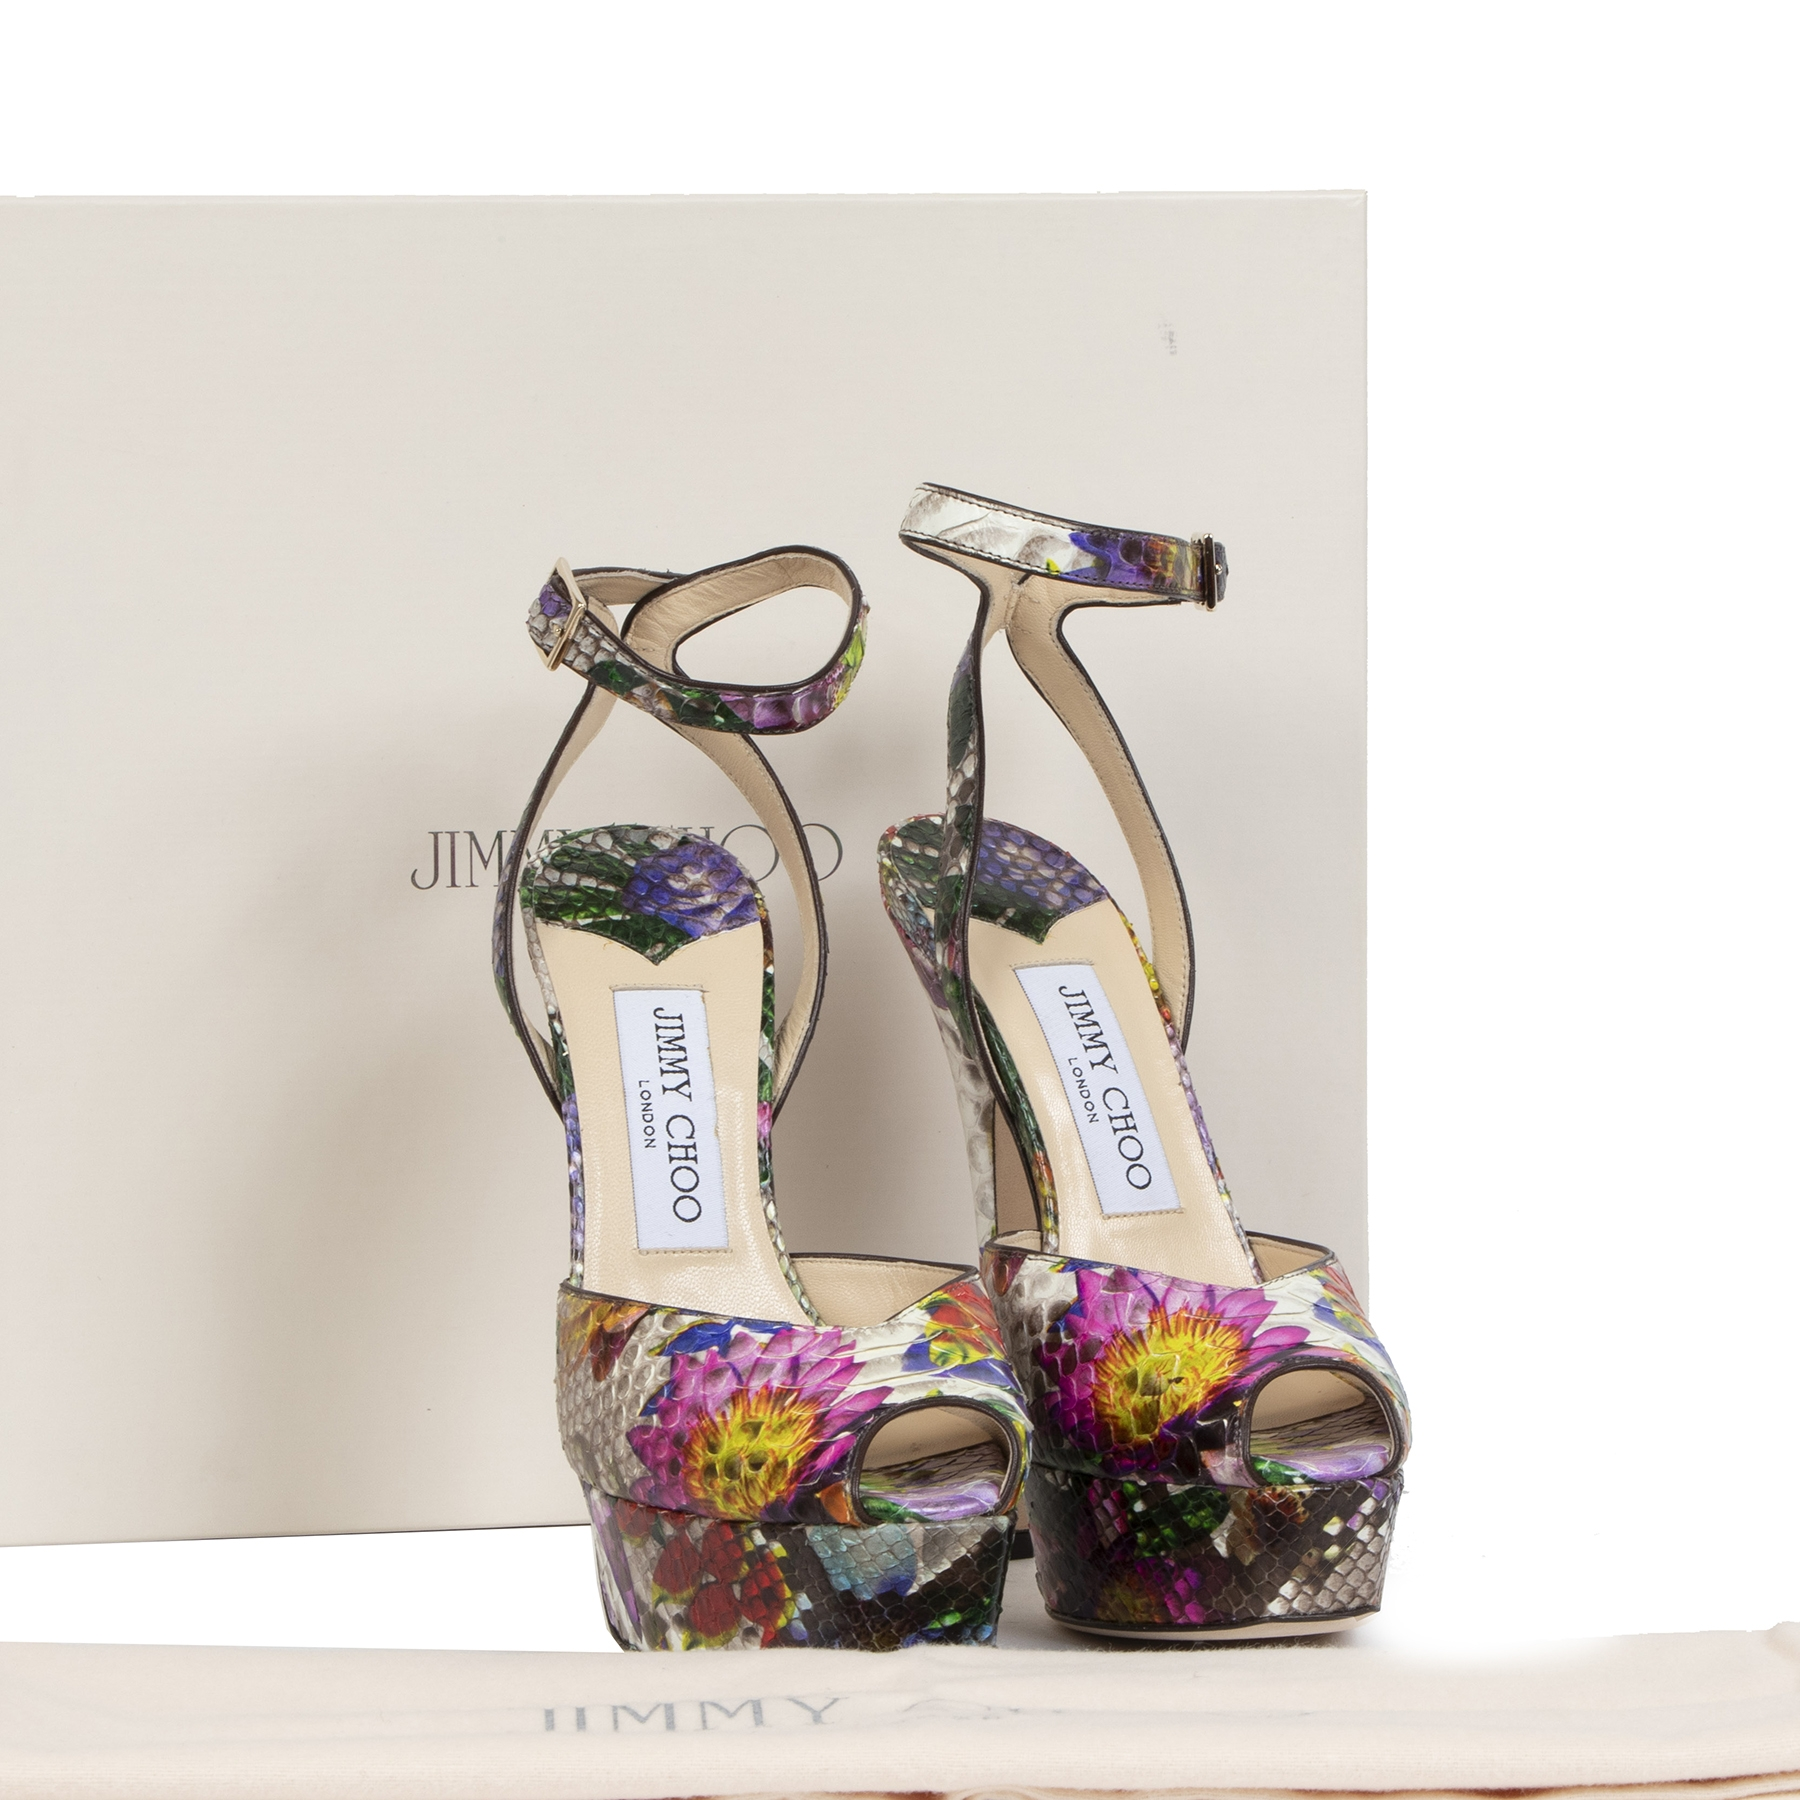 Jimmy Choo Floral Print Python Multicolor Sandals - size 35